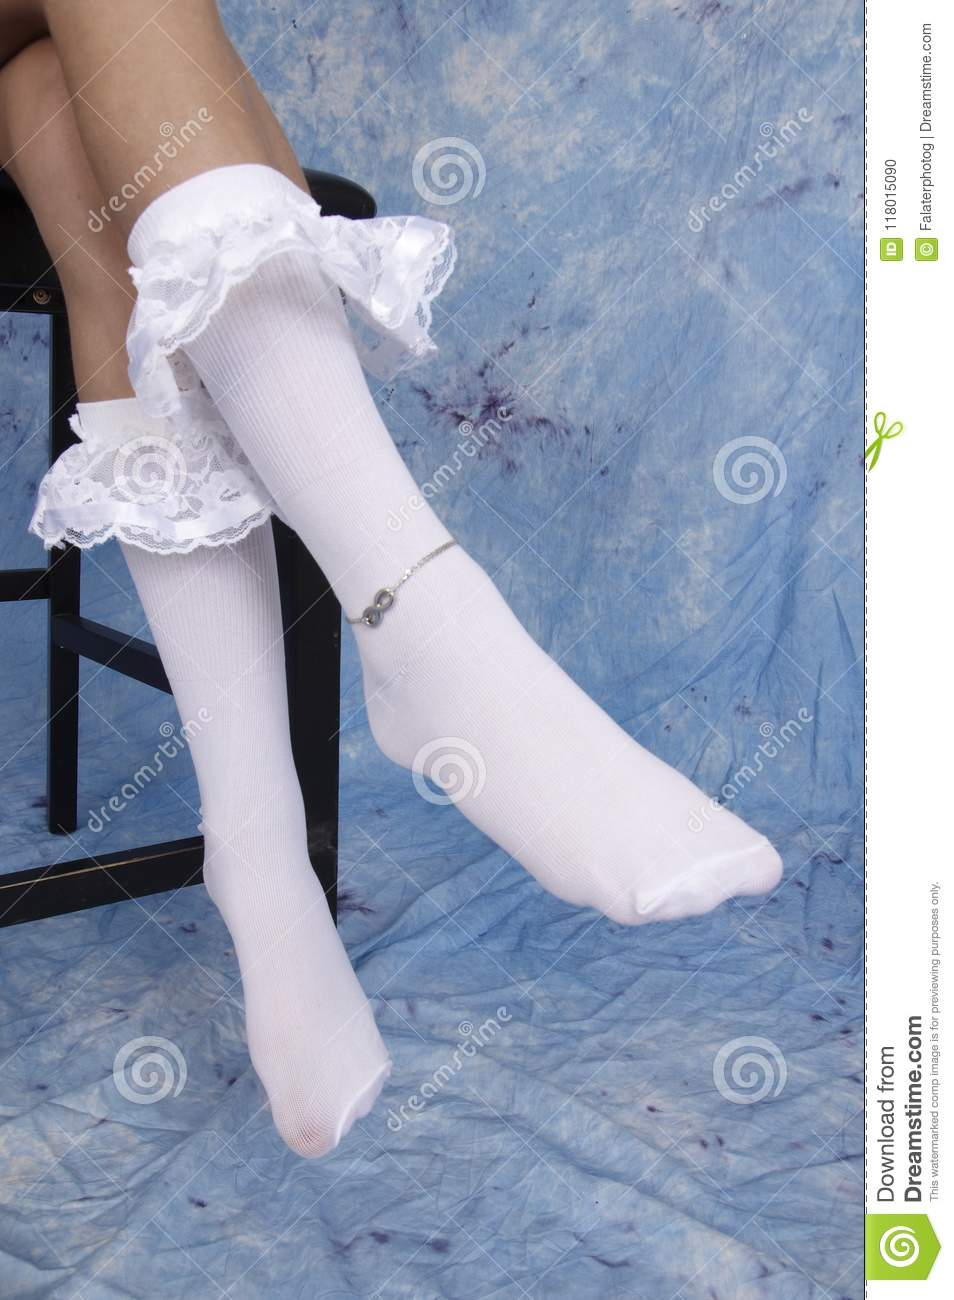 Close Up Of Girls Legs Wearing White Ruffled Socks And Silver Ankle Chain